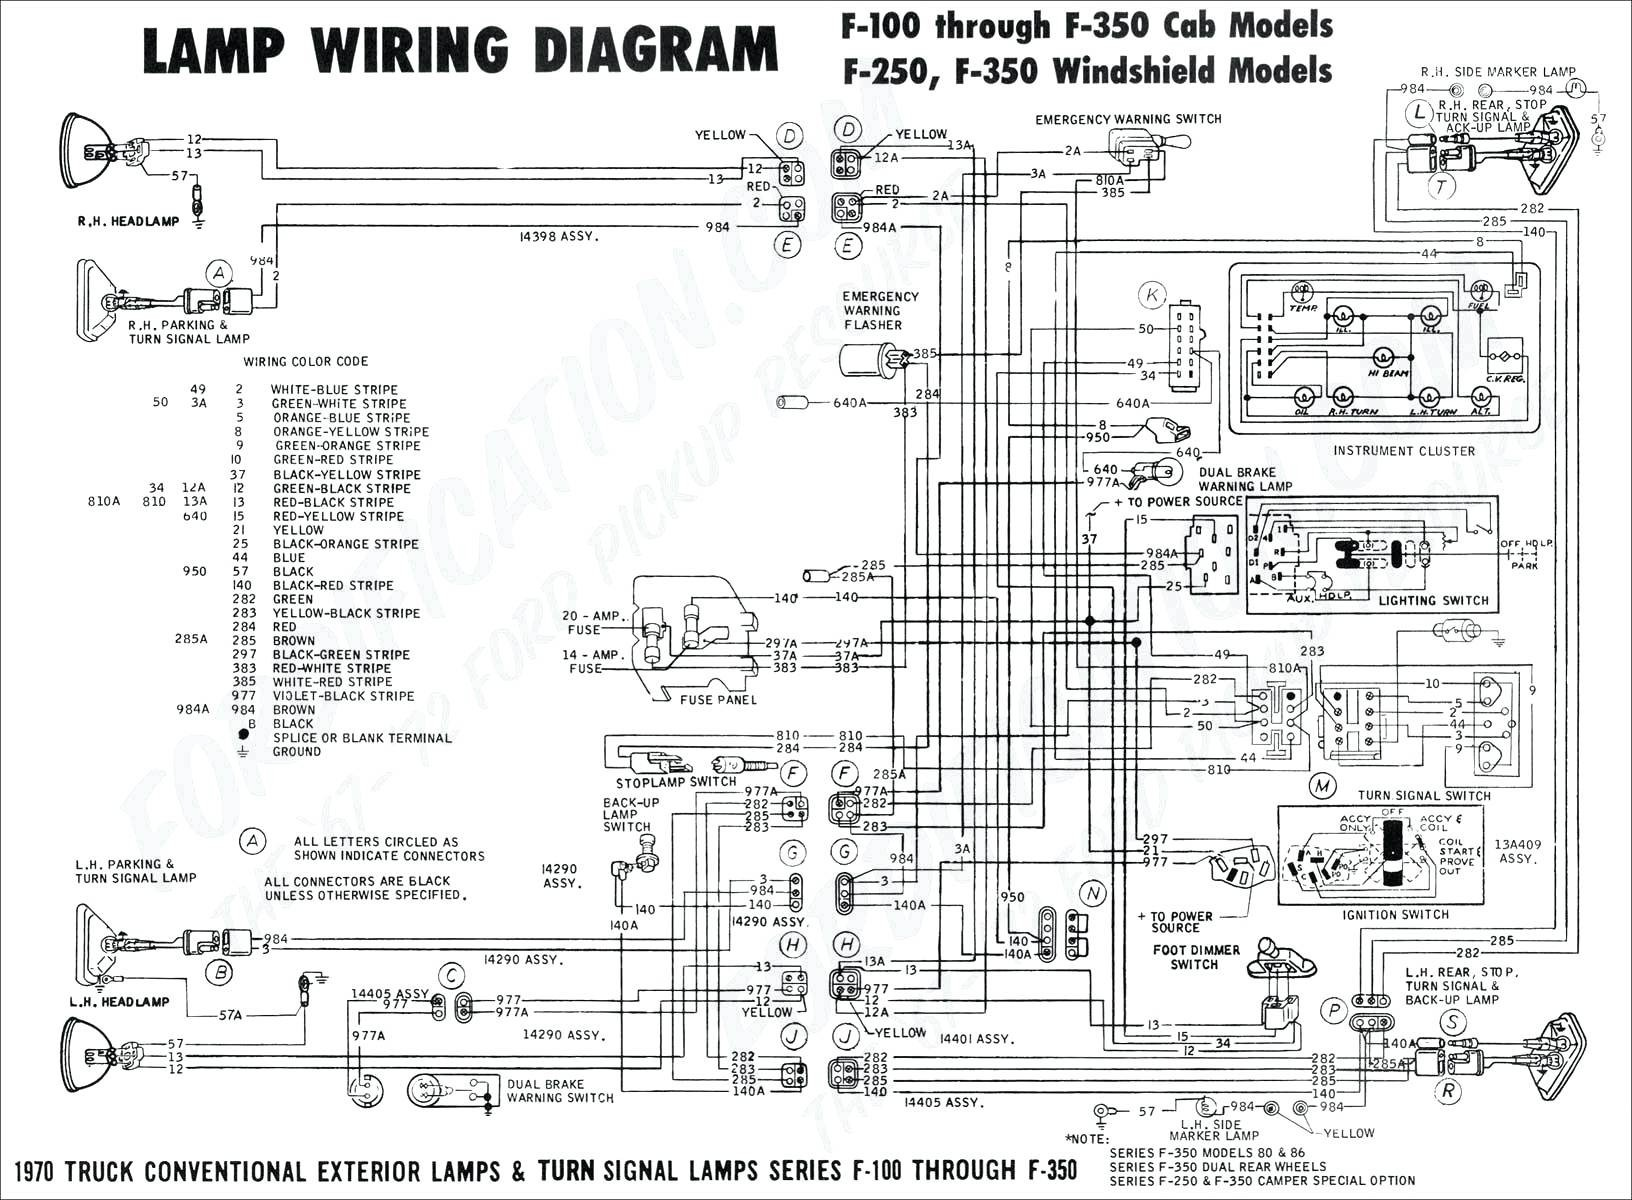 2001 ford Expedition Engine Diagram 1996 ford 7 3 Powerstroke Wiring Diagram Wiring Diagrams • Of 2001 ford Expedition Engine Diagram